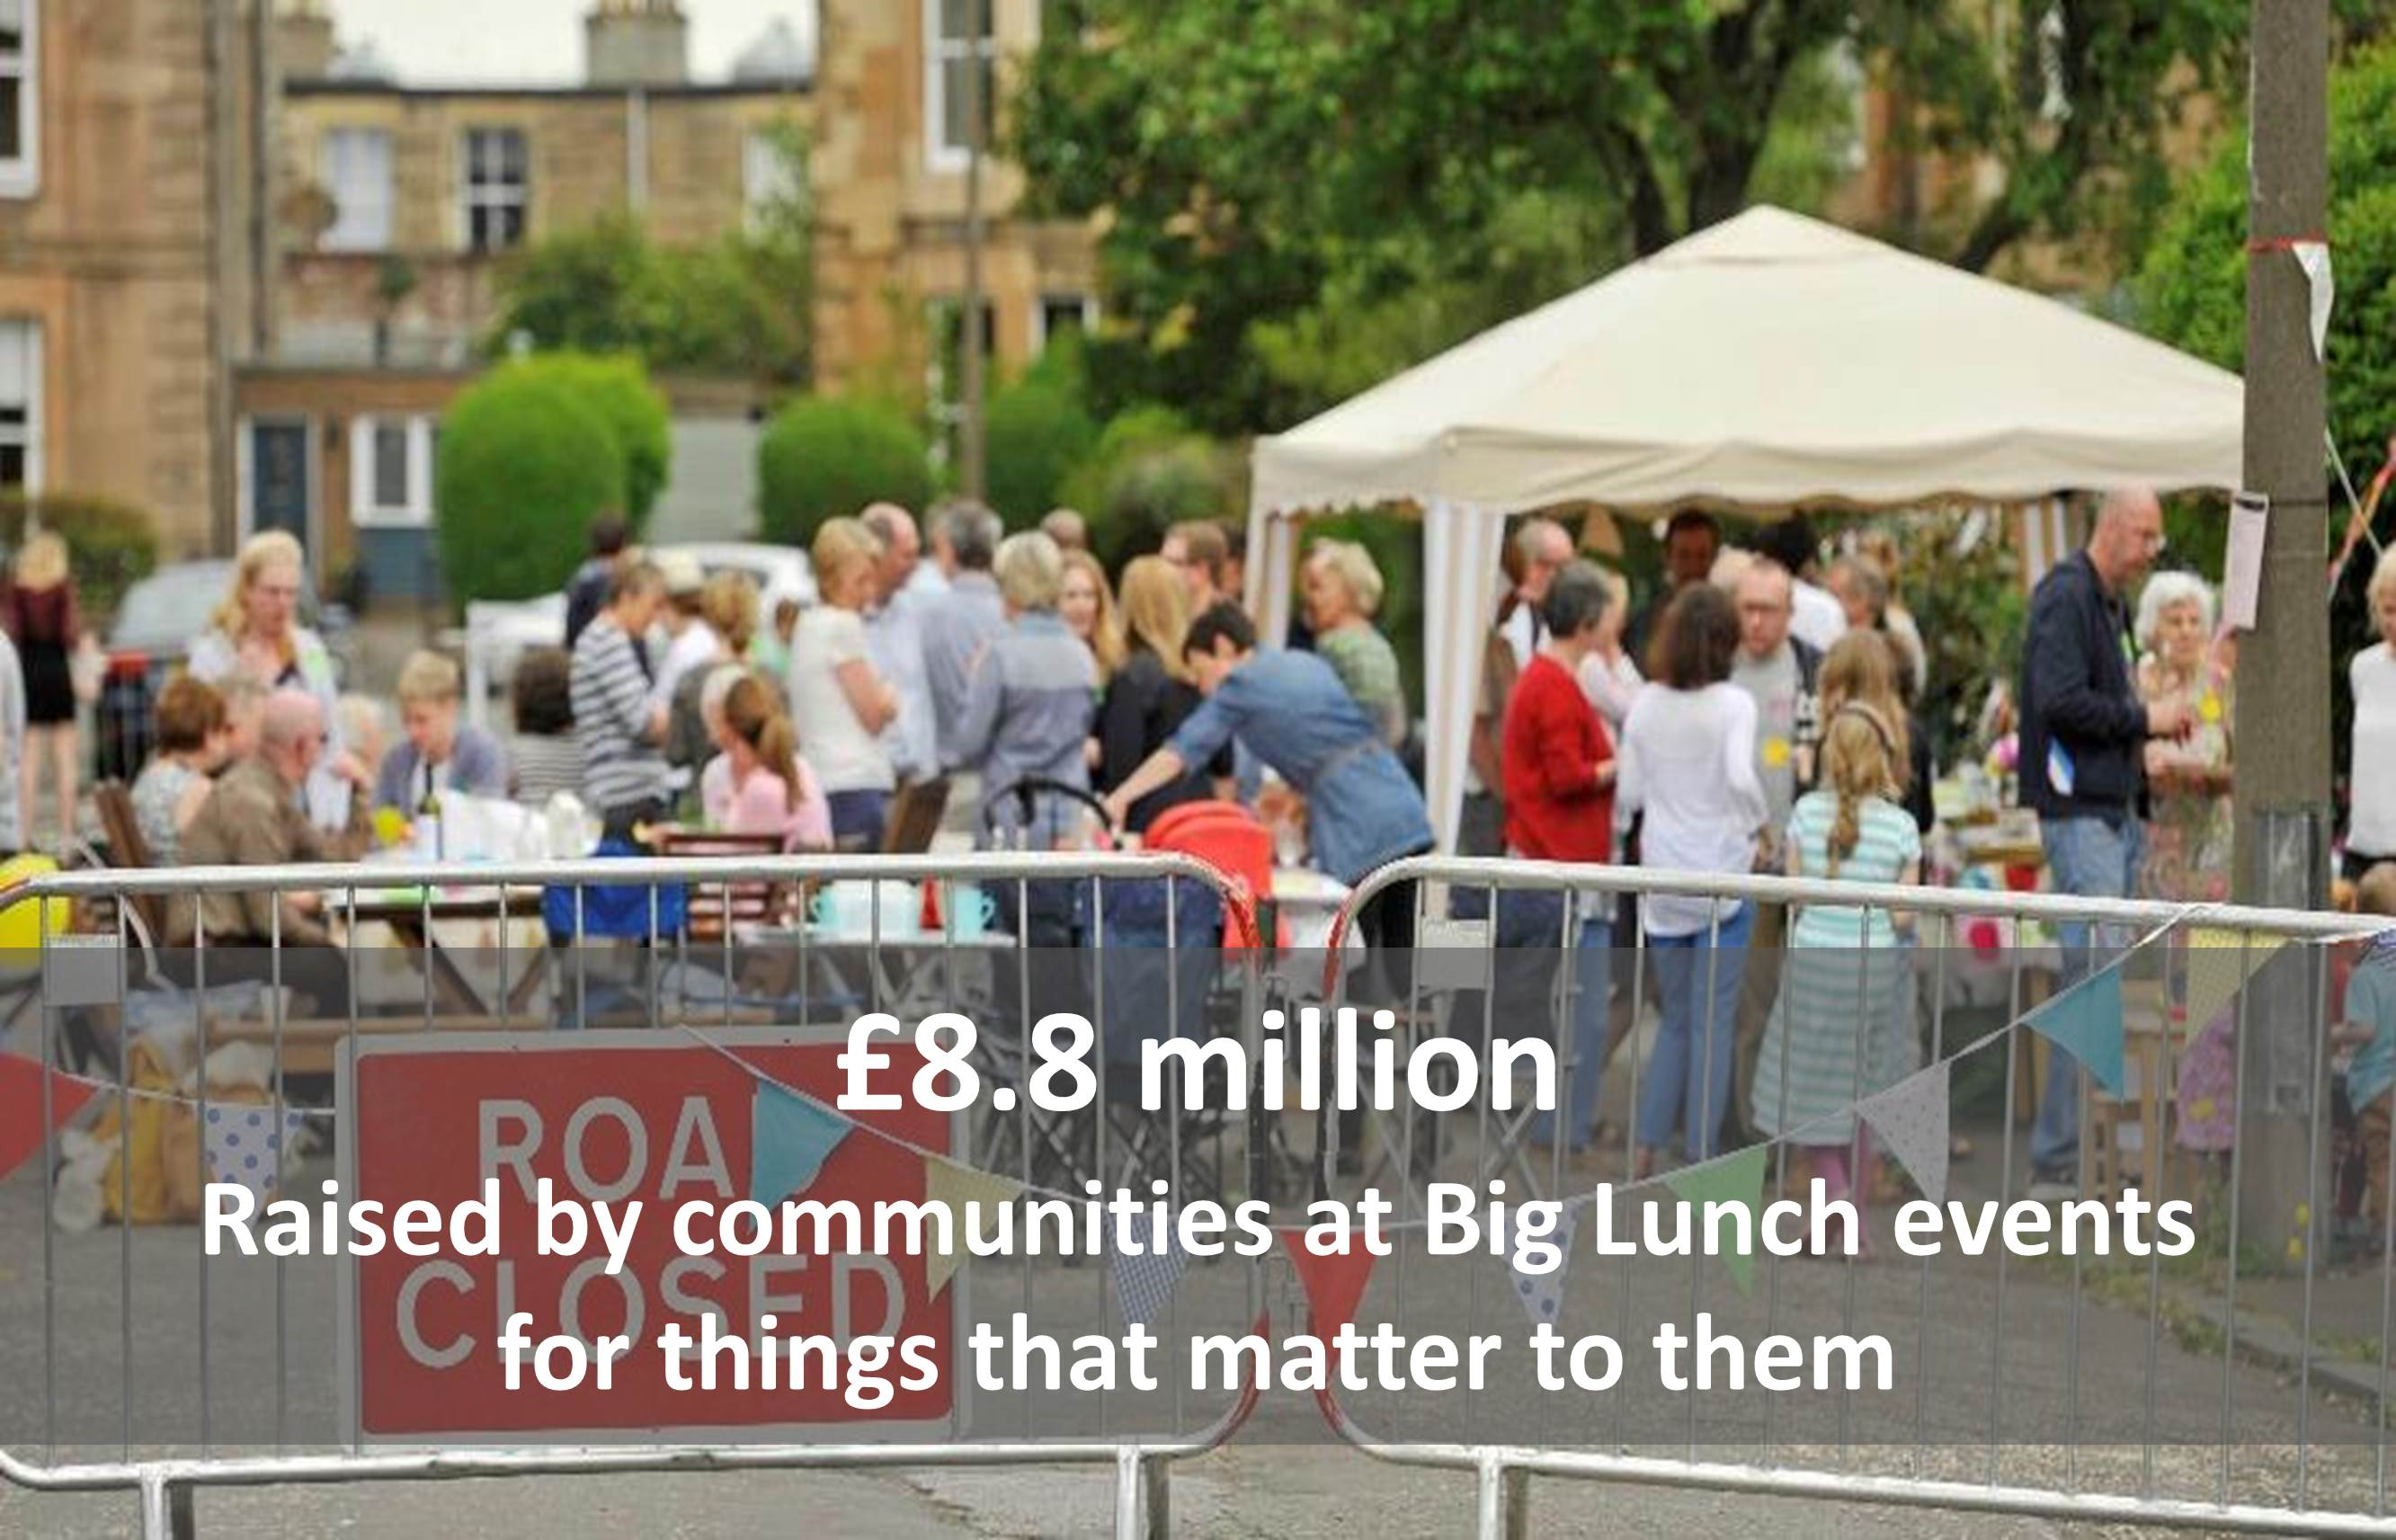 £8.8 million was raised at The Big Lunch in 2016, with over 90% of the money raised going to local causes